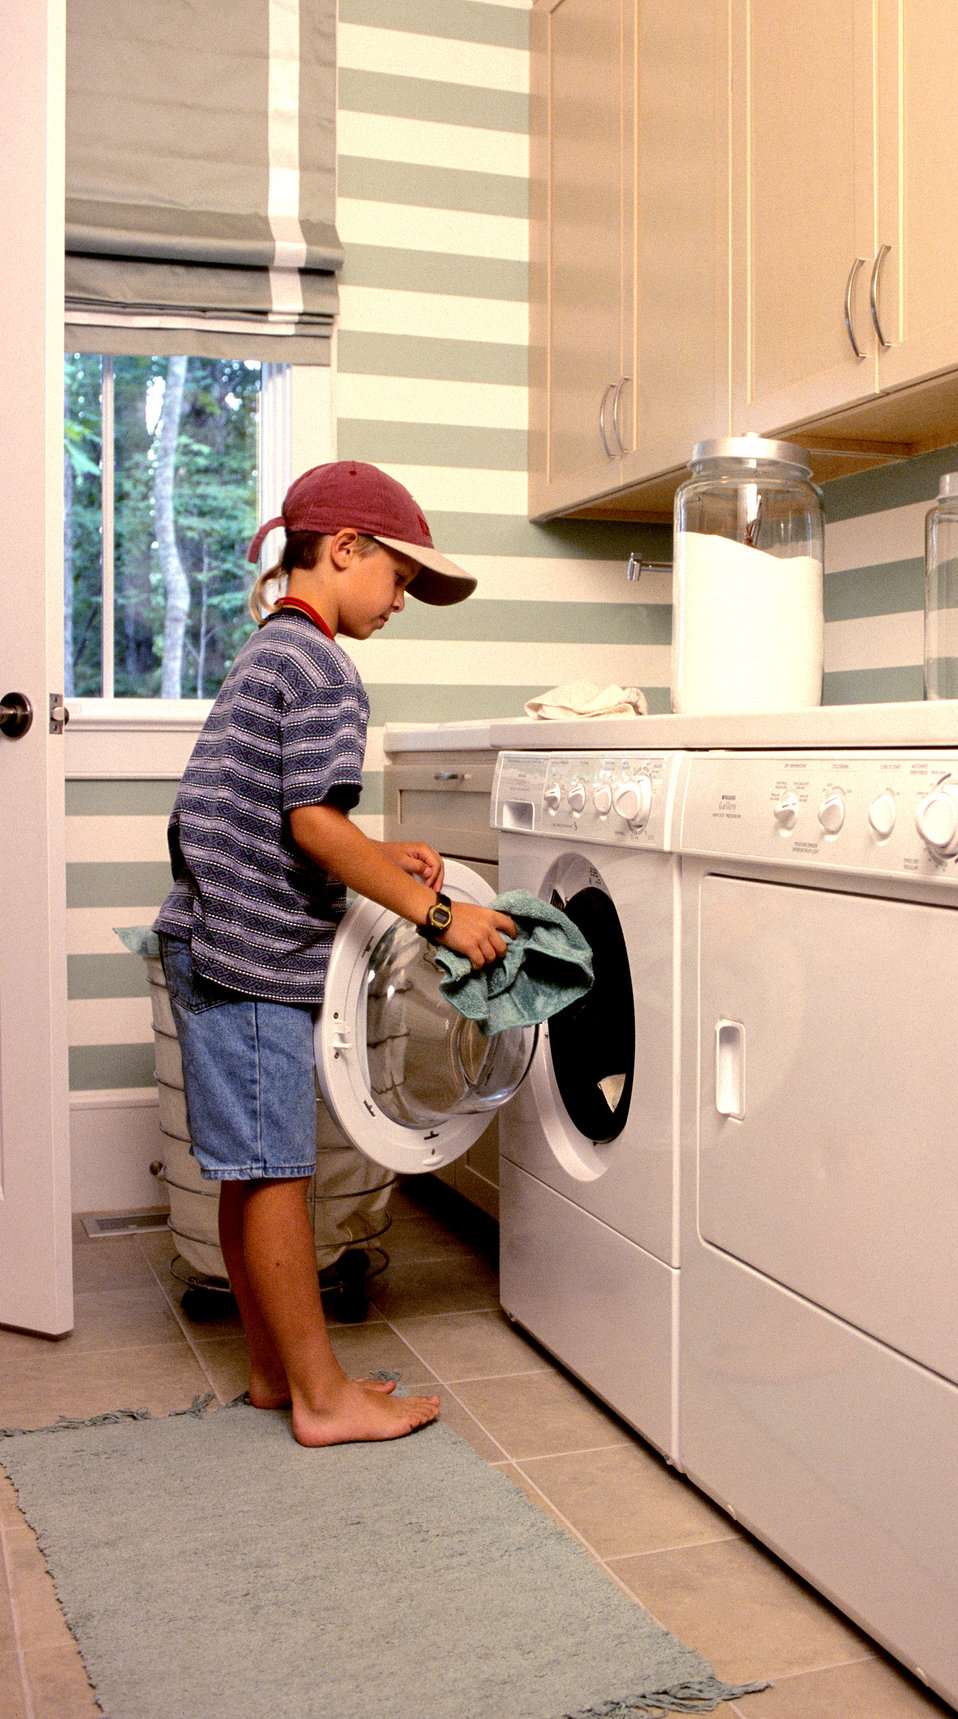 This 2000 image showed a young boy utilizing a front-loading clothes washing machine, which was located directly adjacent to a front-loading